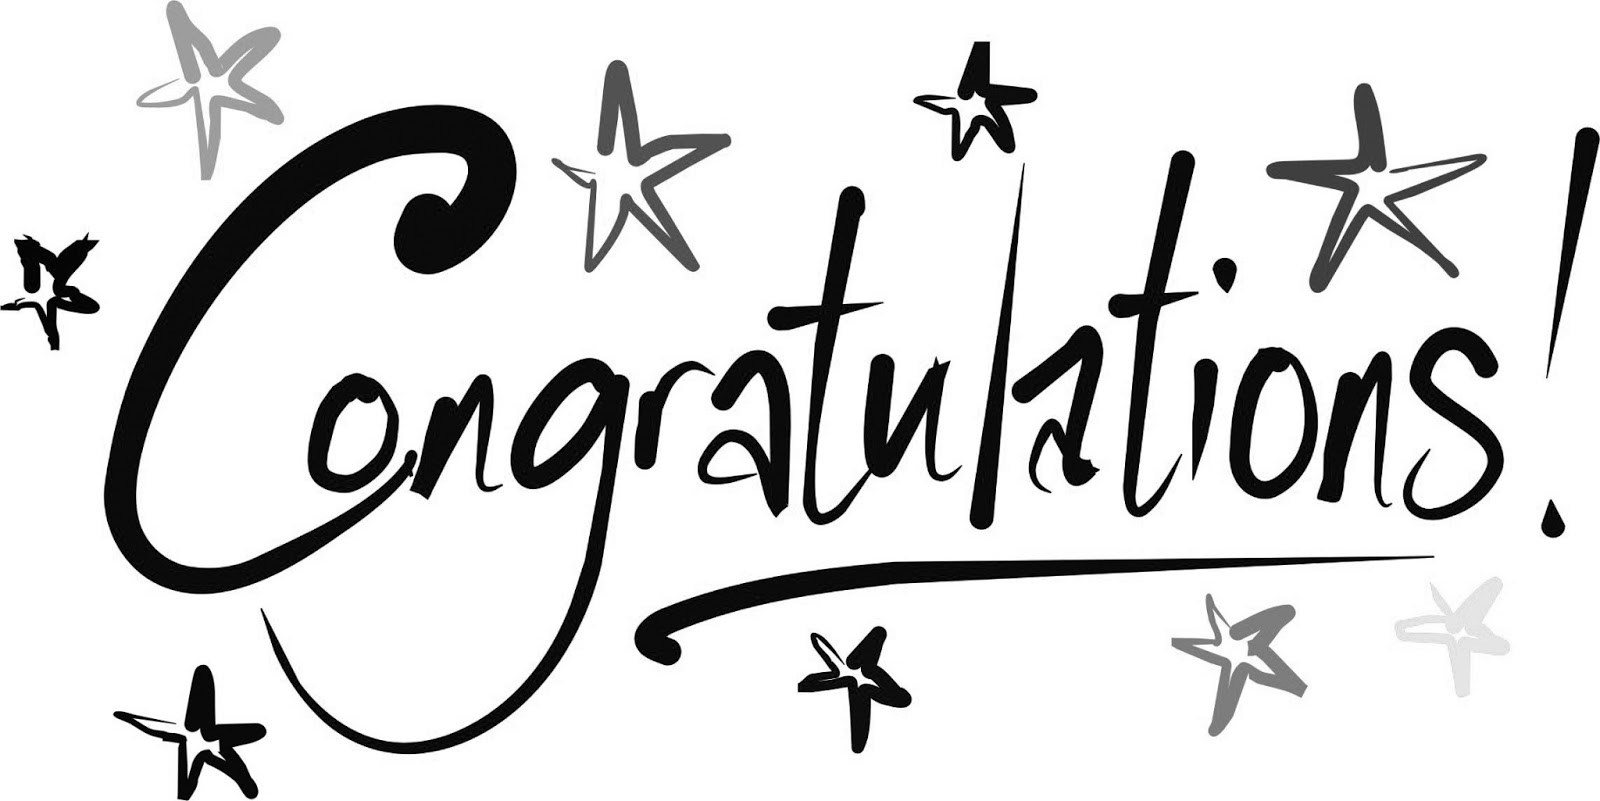 Free Congratulations Images.